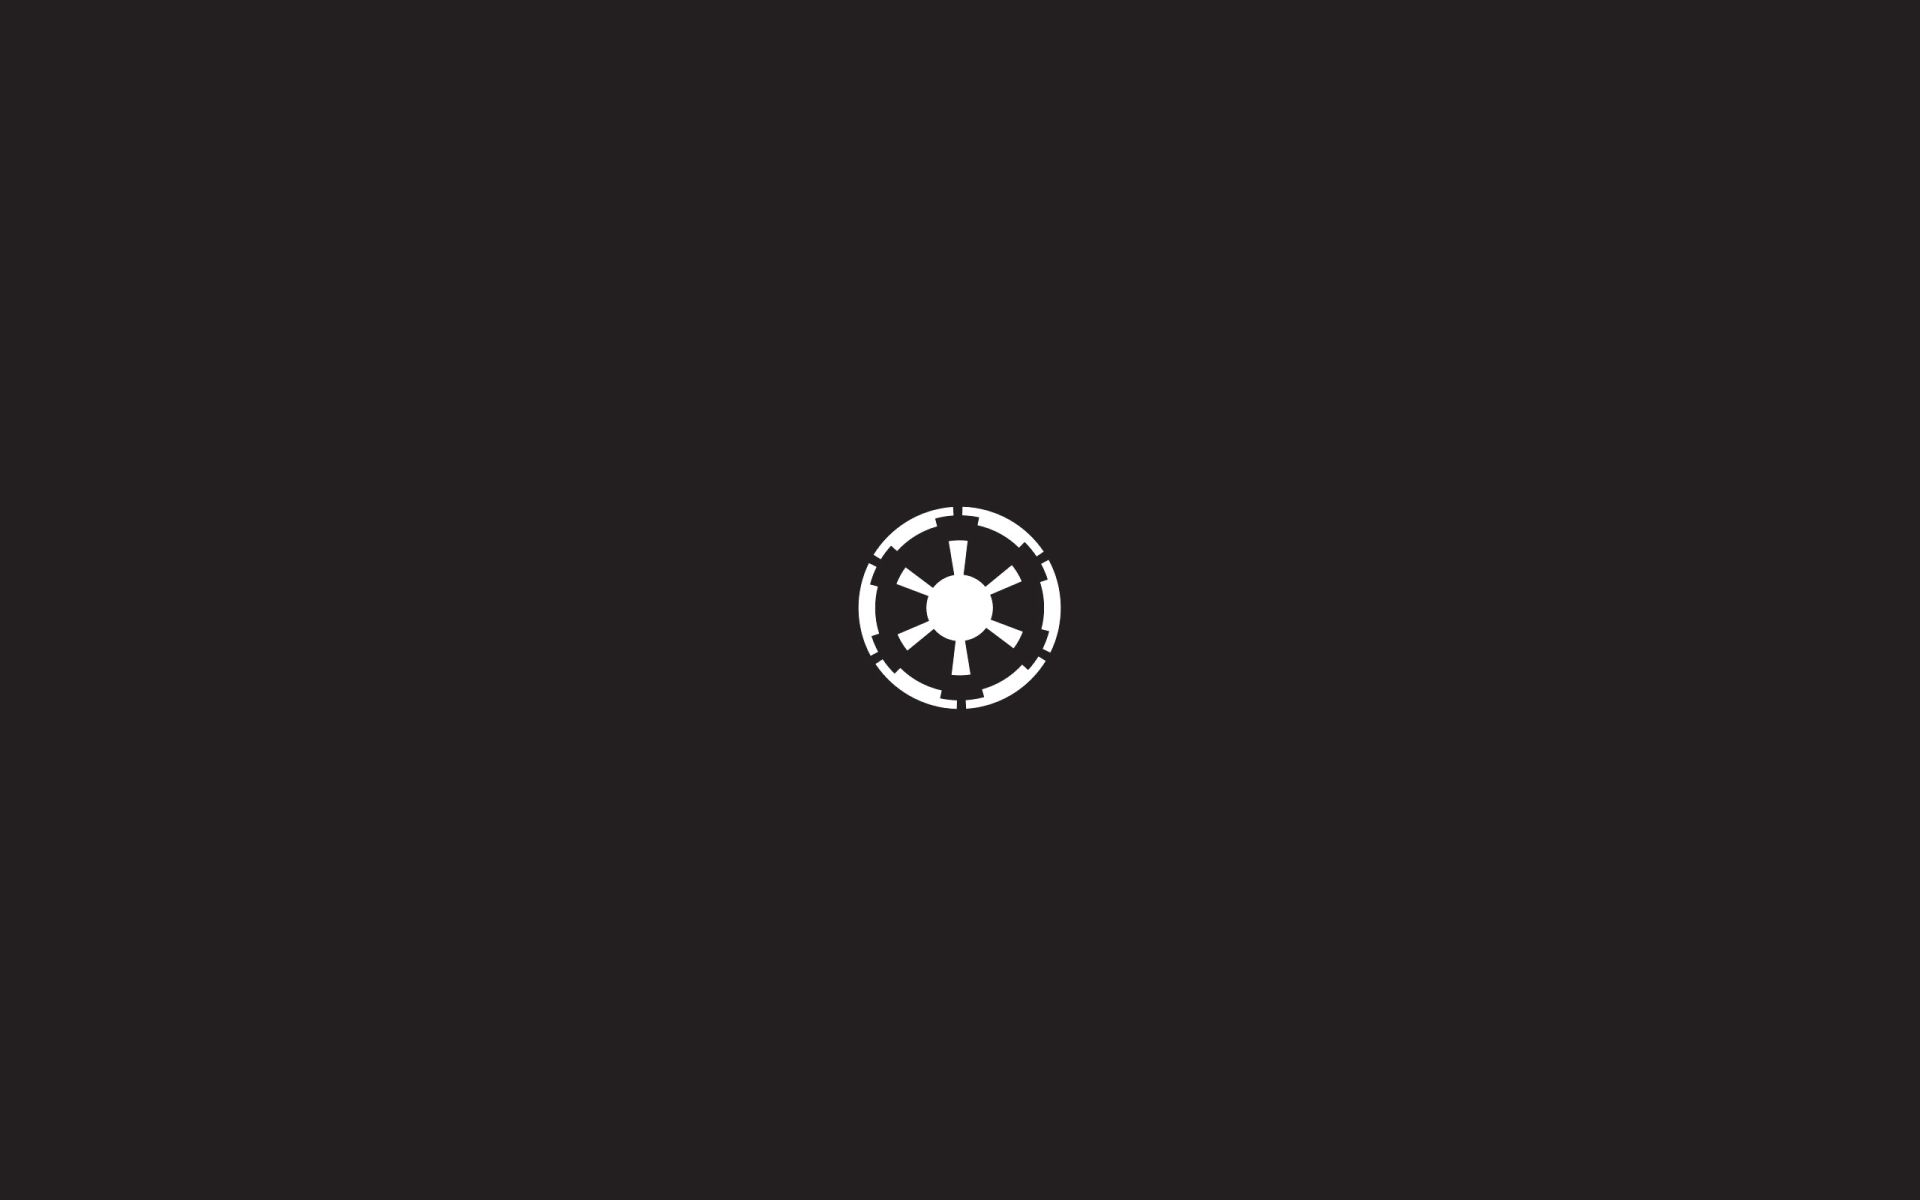 Star Wars Minimalist Wallpapers 66 Images Wallpaperboat